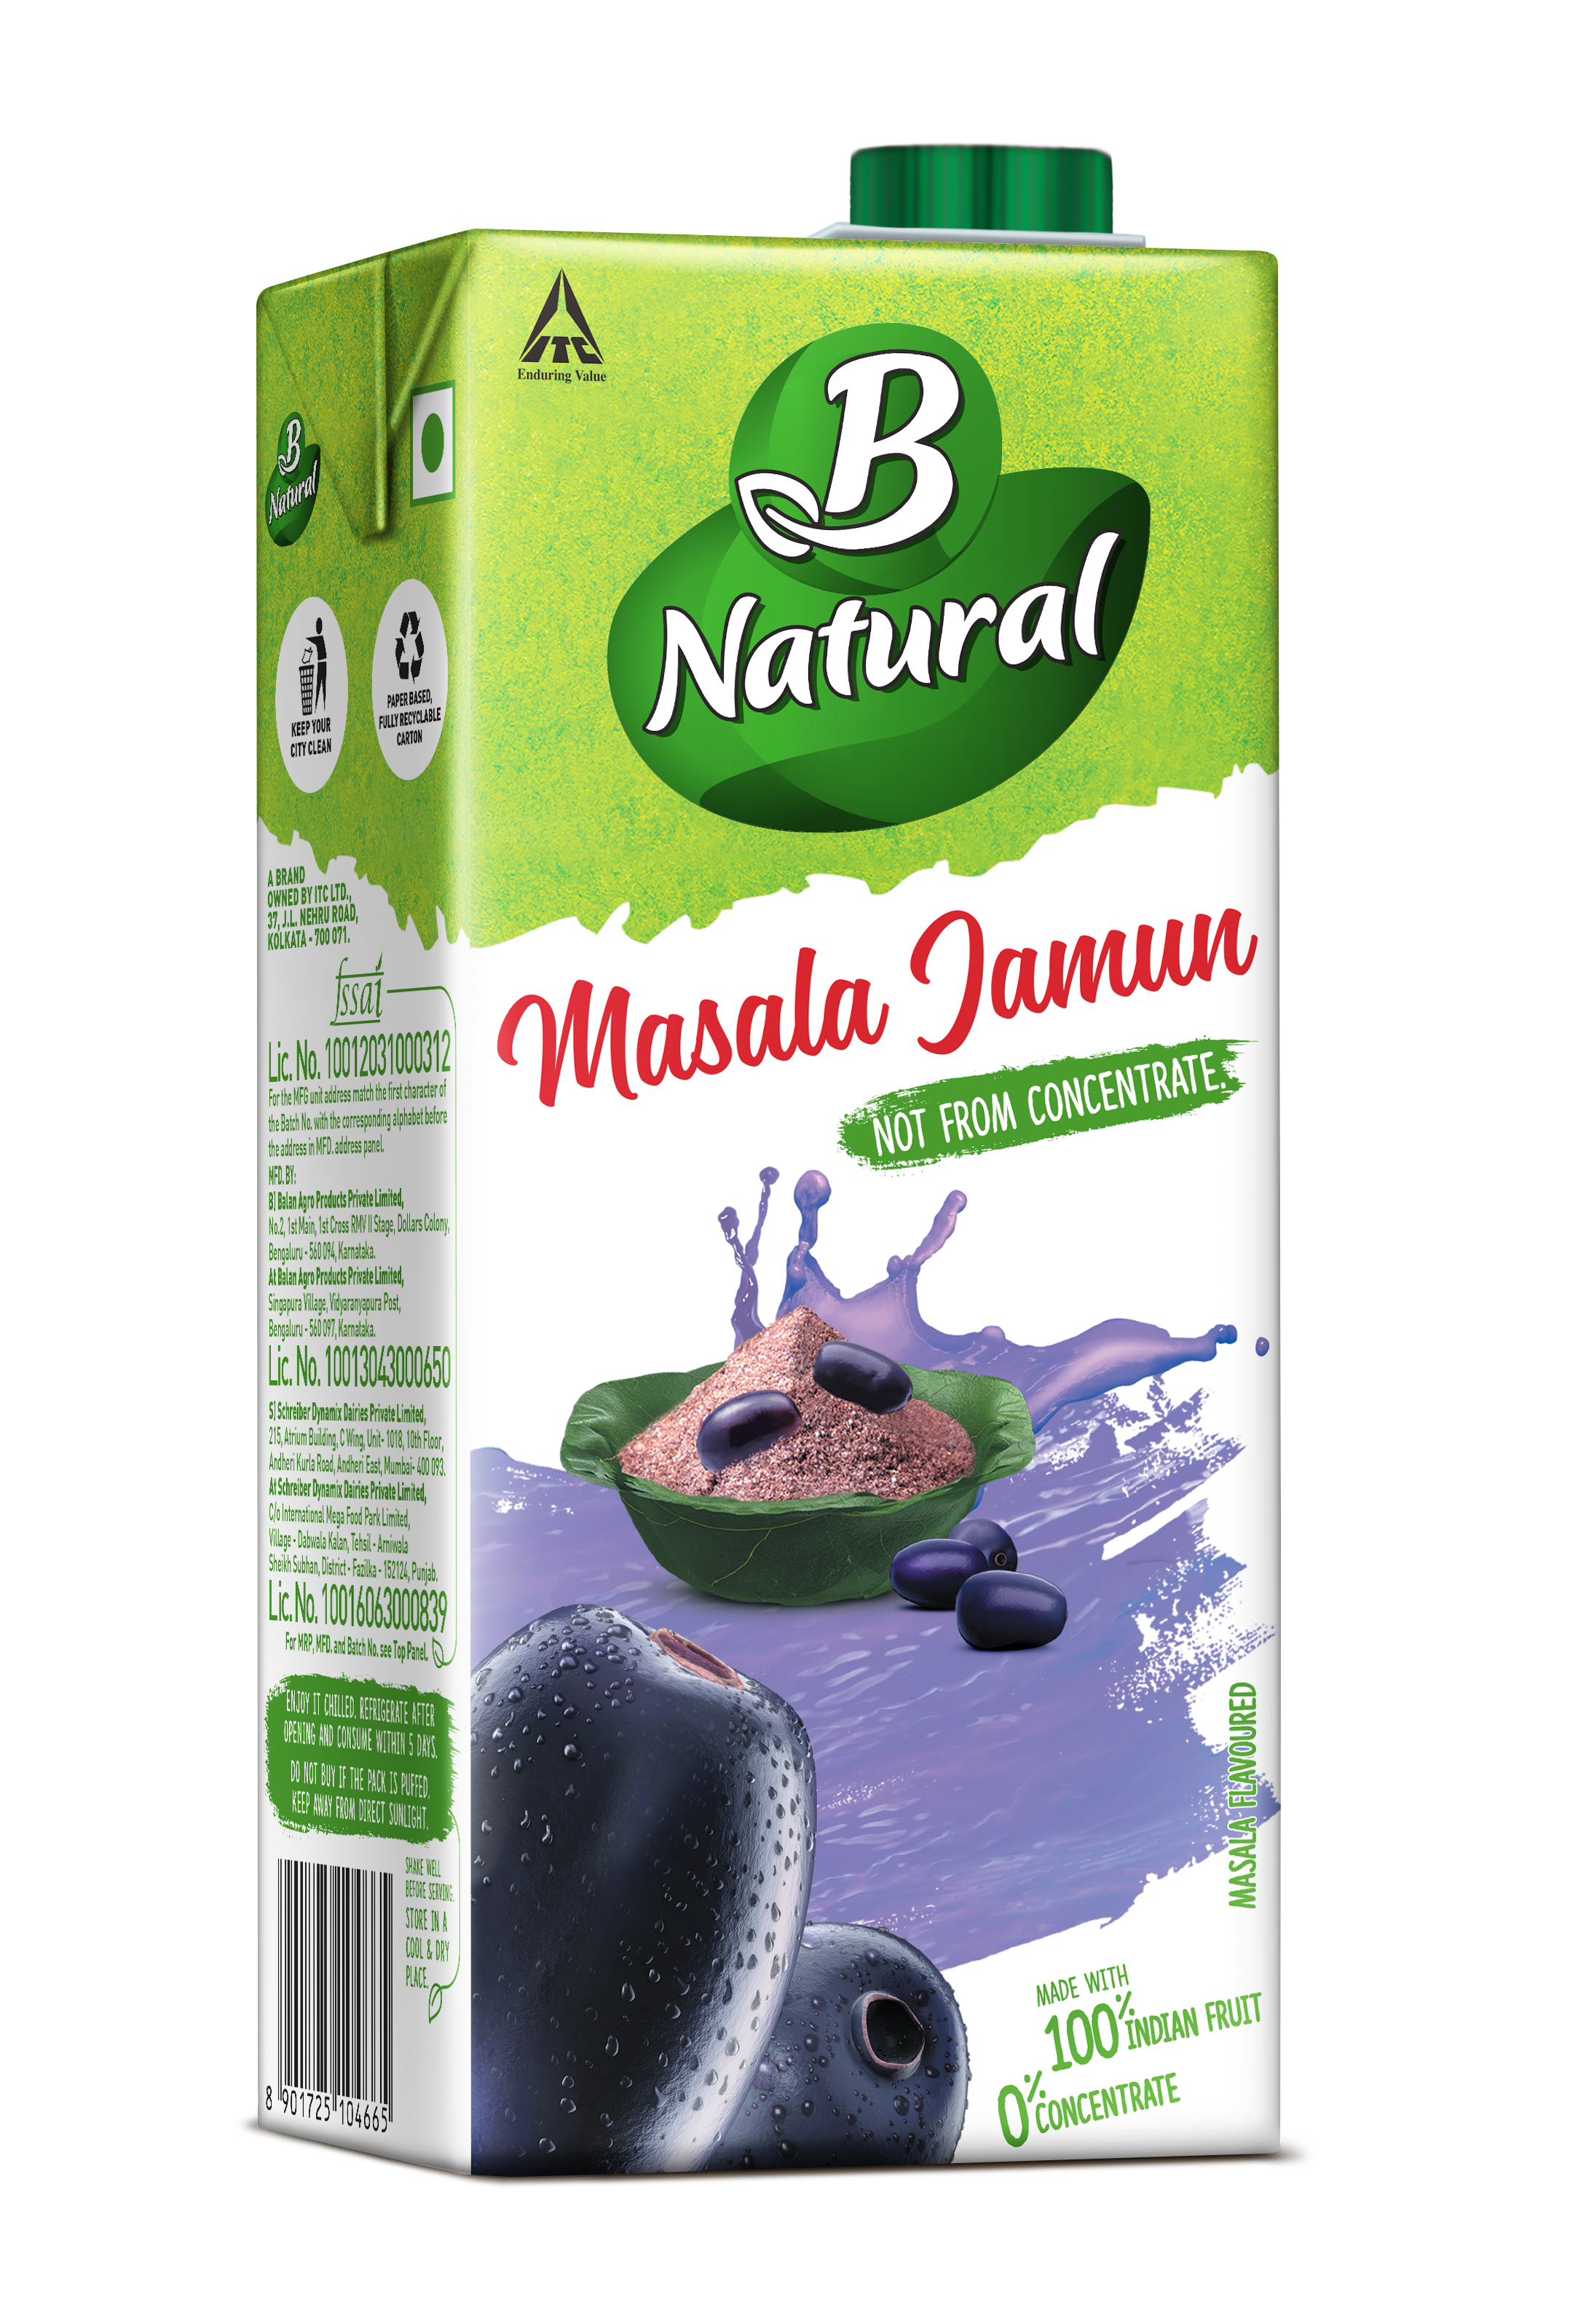 B Natural Masala Jamun Drinks